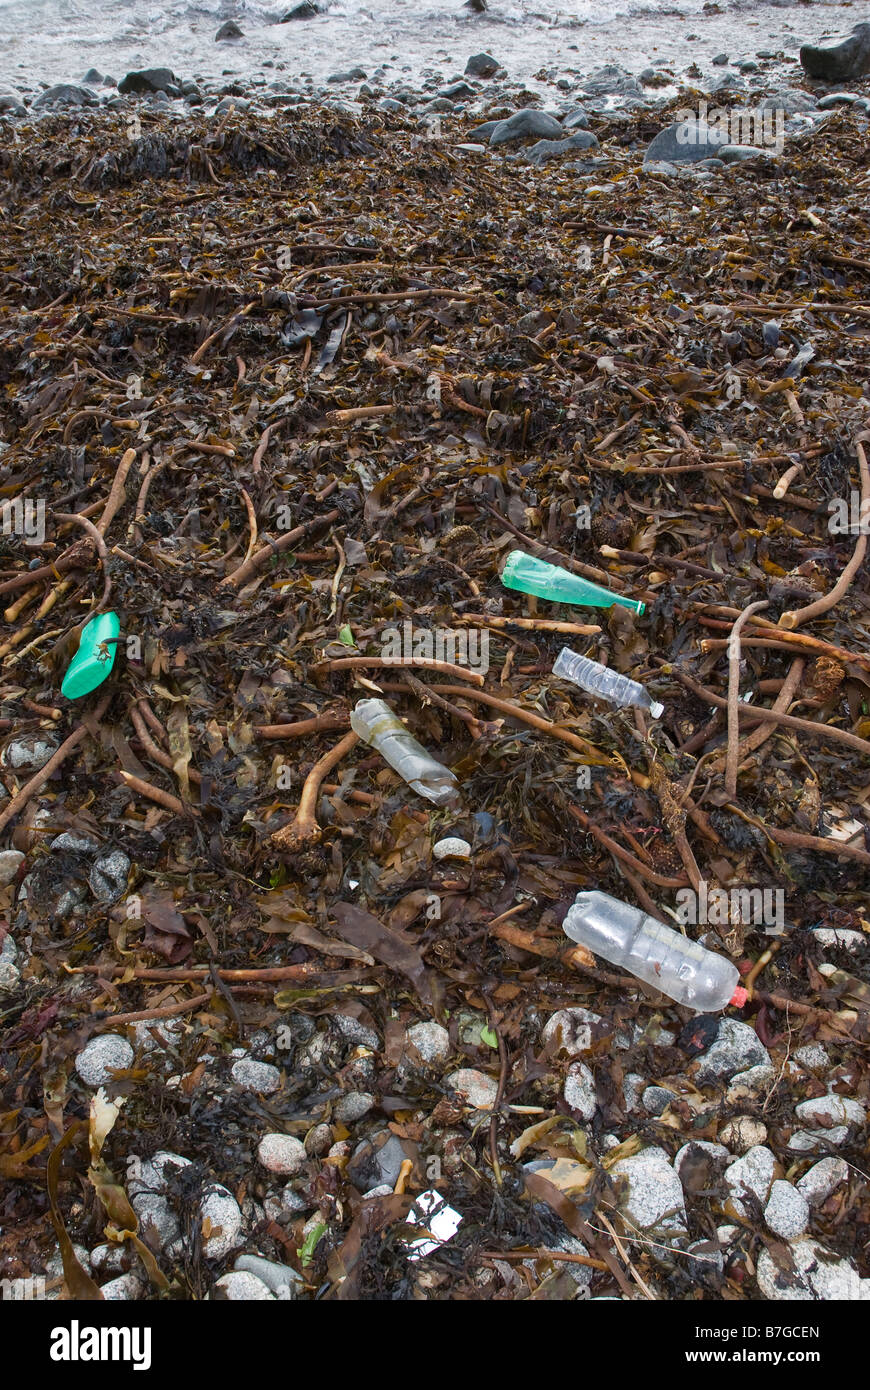 Various plastic bottles and containers washed up on a seaweed covered beach. - Stock Image